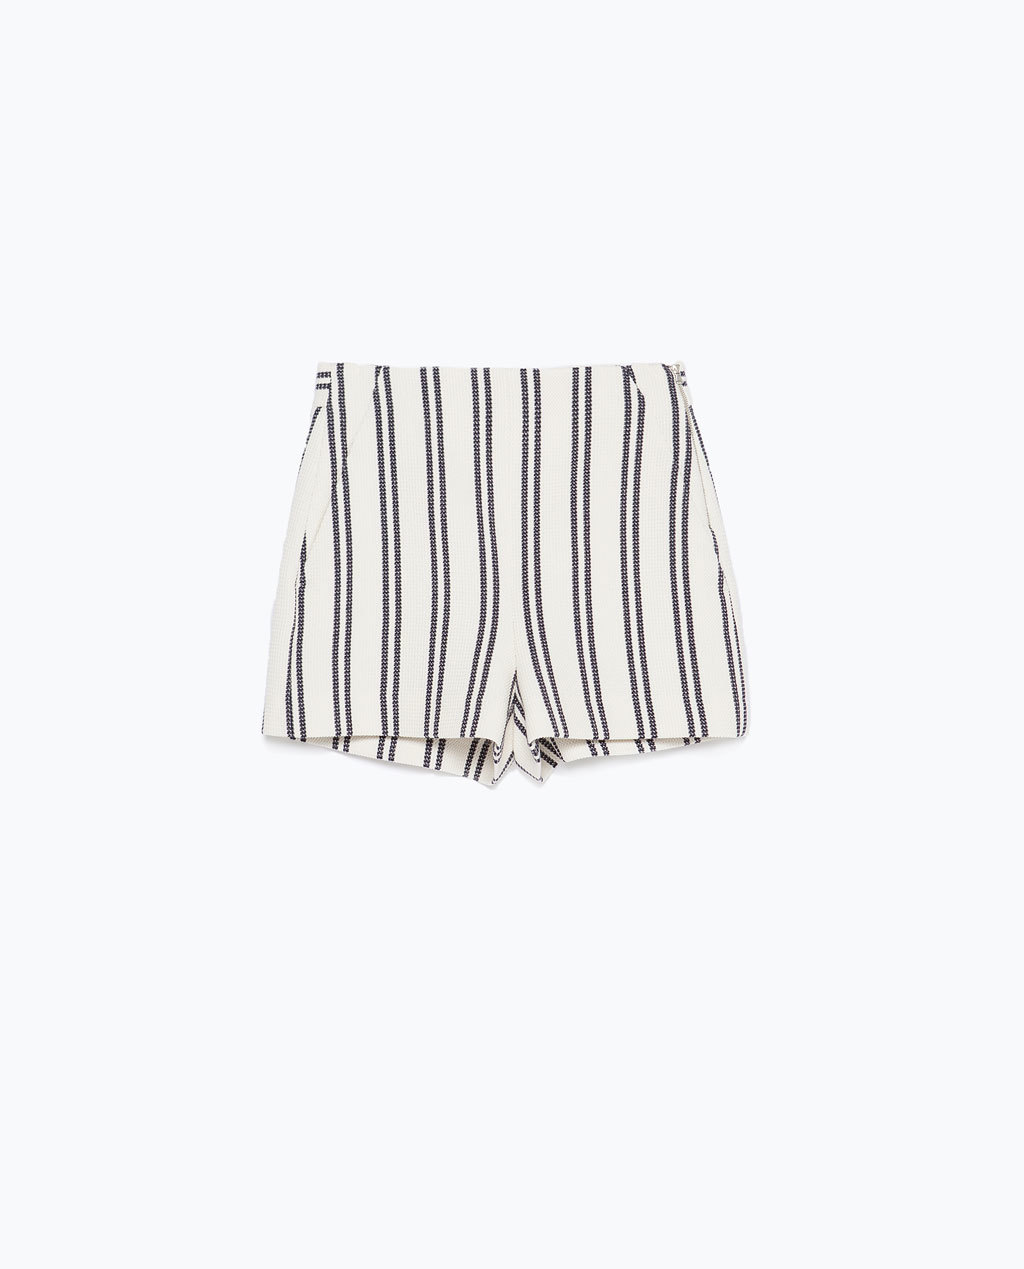 High Waisted Striped Shorts - pattern: vertical stripes; waist: mid/regular rise; predominant colour: ivory/cream; secondary colour: mid grey; occasions: casual; fibres: cotton - 100%; pattern type: fabric; texture group: other - light to midweight; season: s/s 2015; style: shorts; length: short shorts; fit: slim leg; wardrobe: highlight